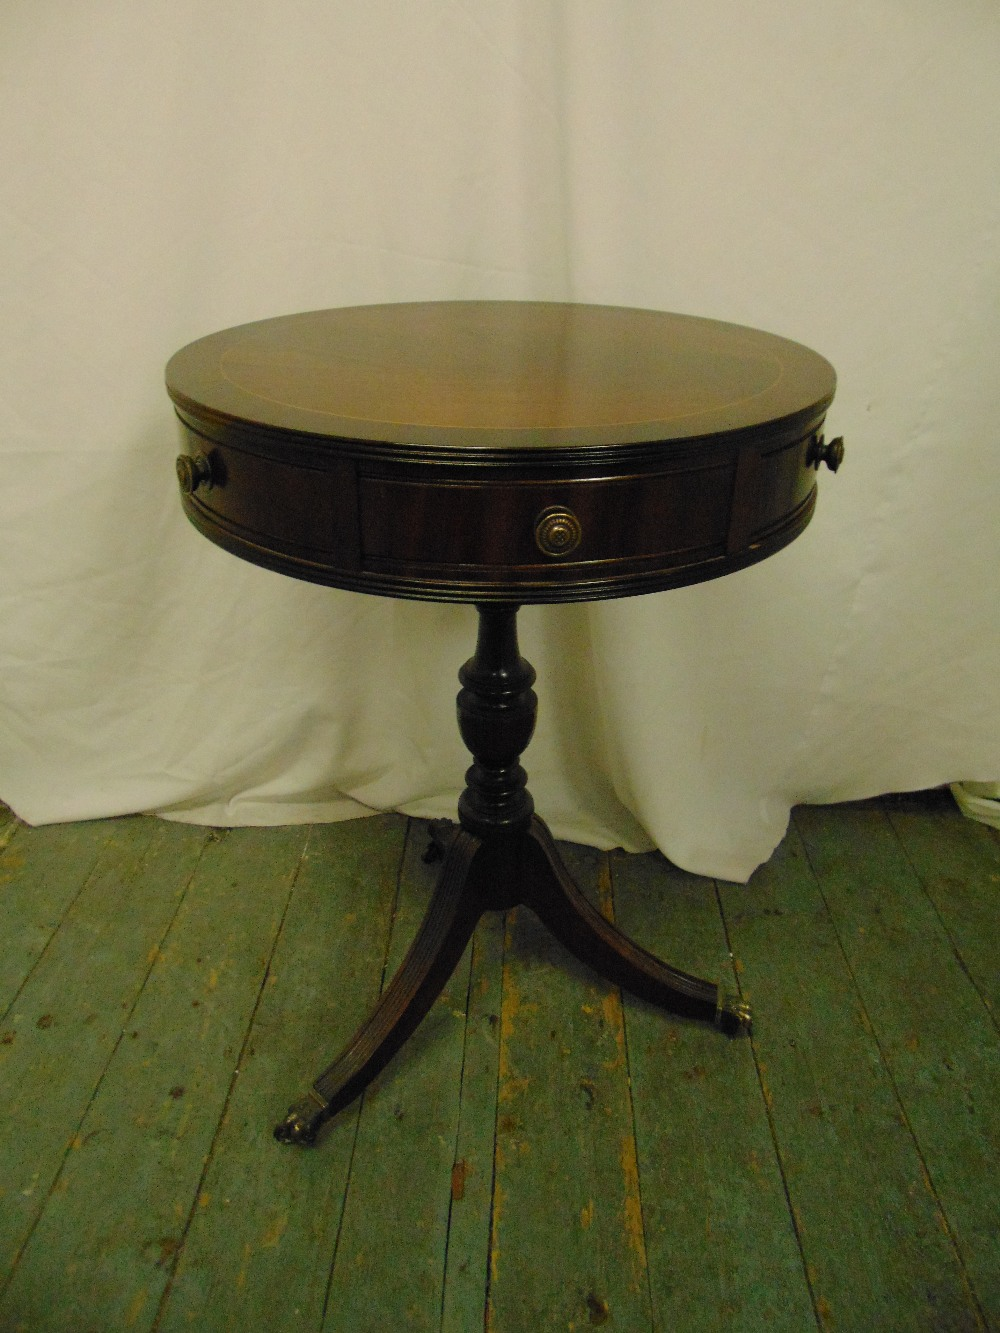 Lot 24 - A mahogany circular drum top table with two drawers on three outswept legs with brass castors